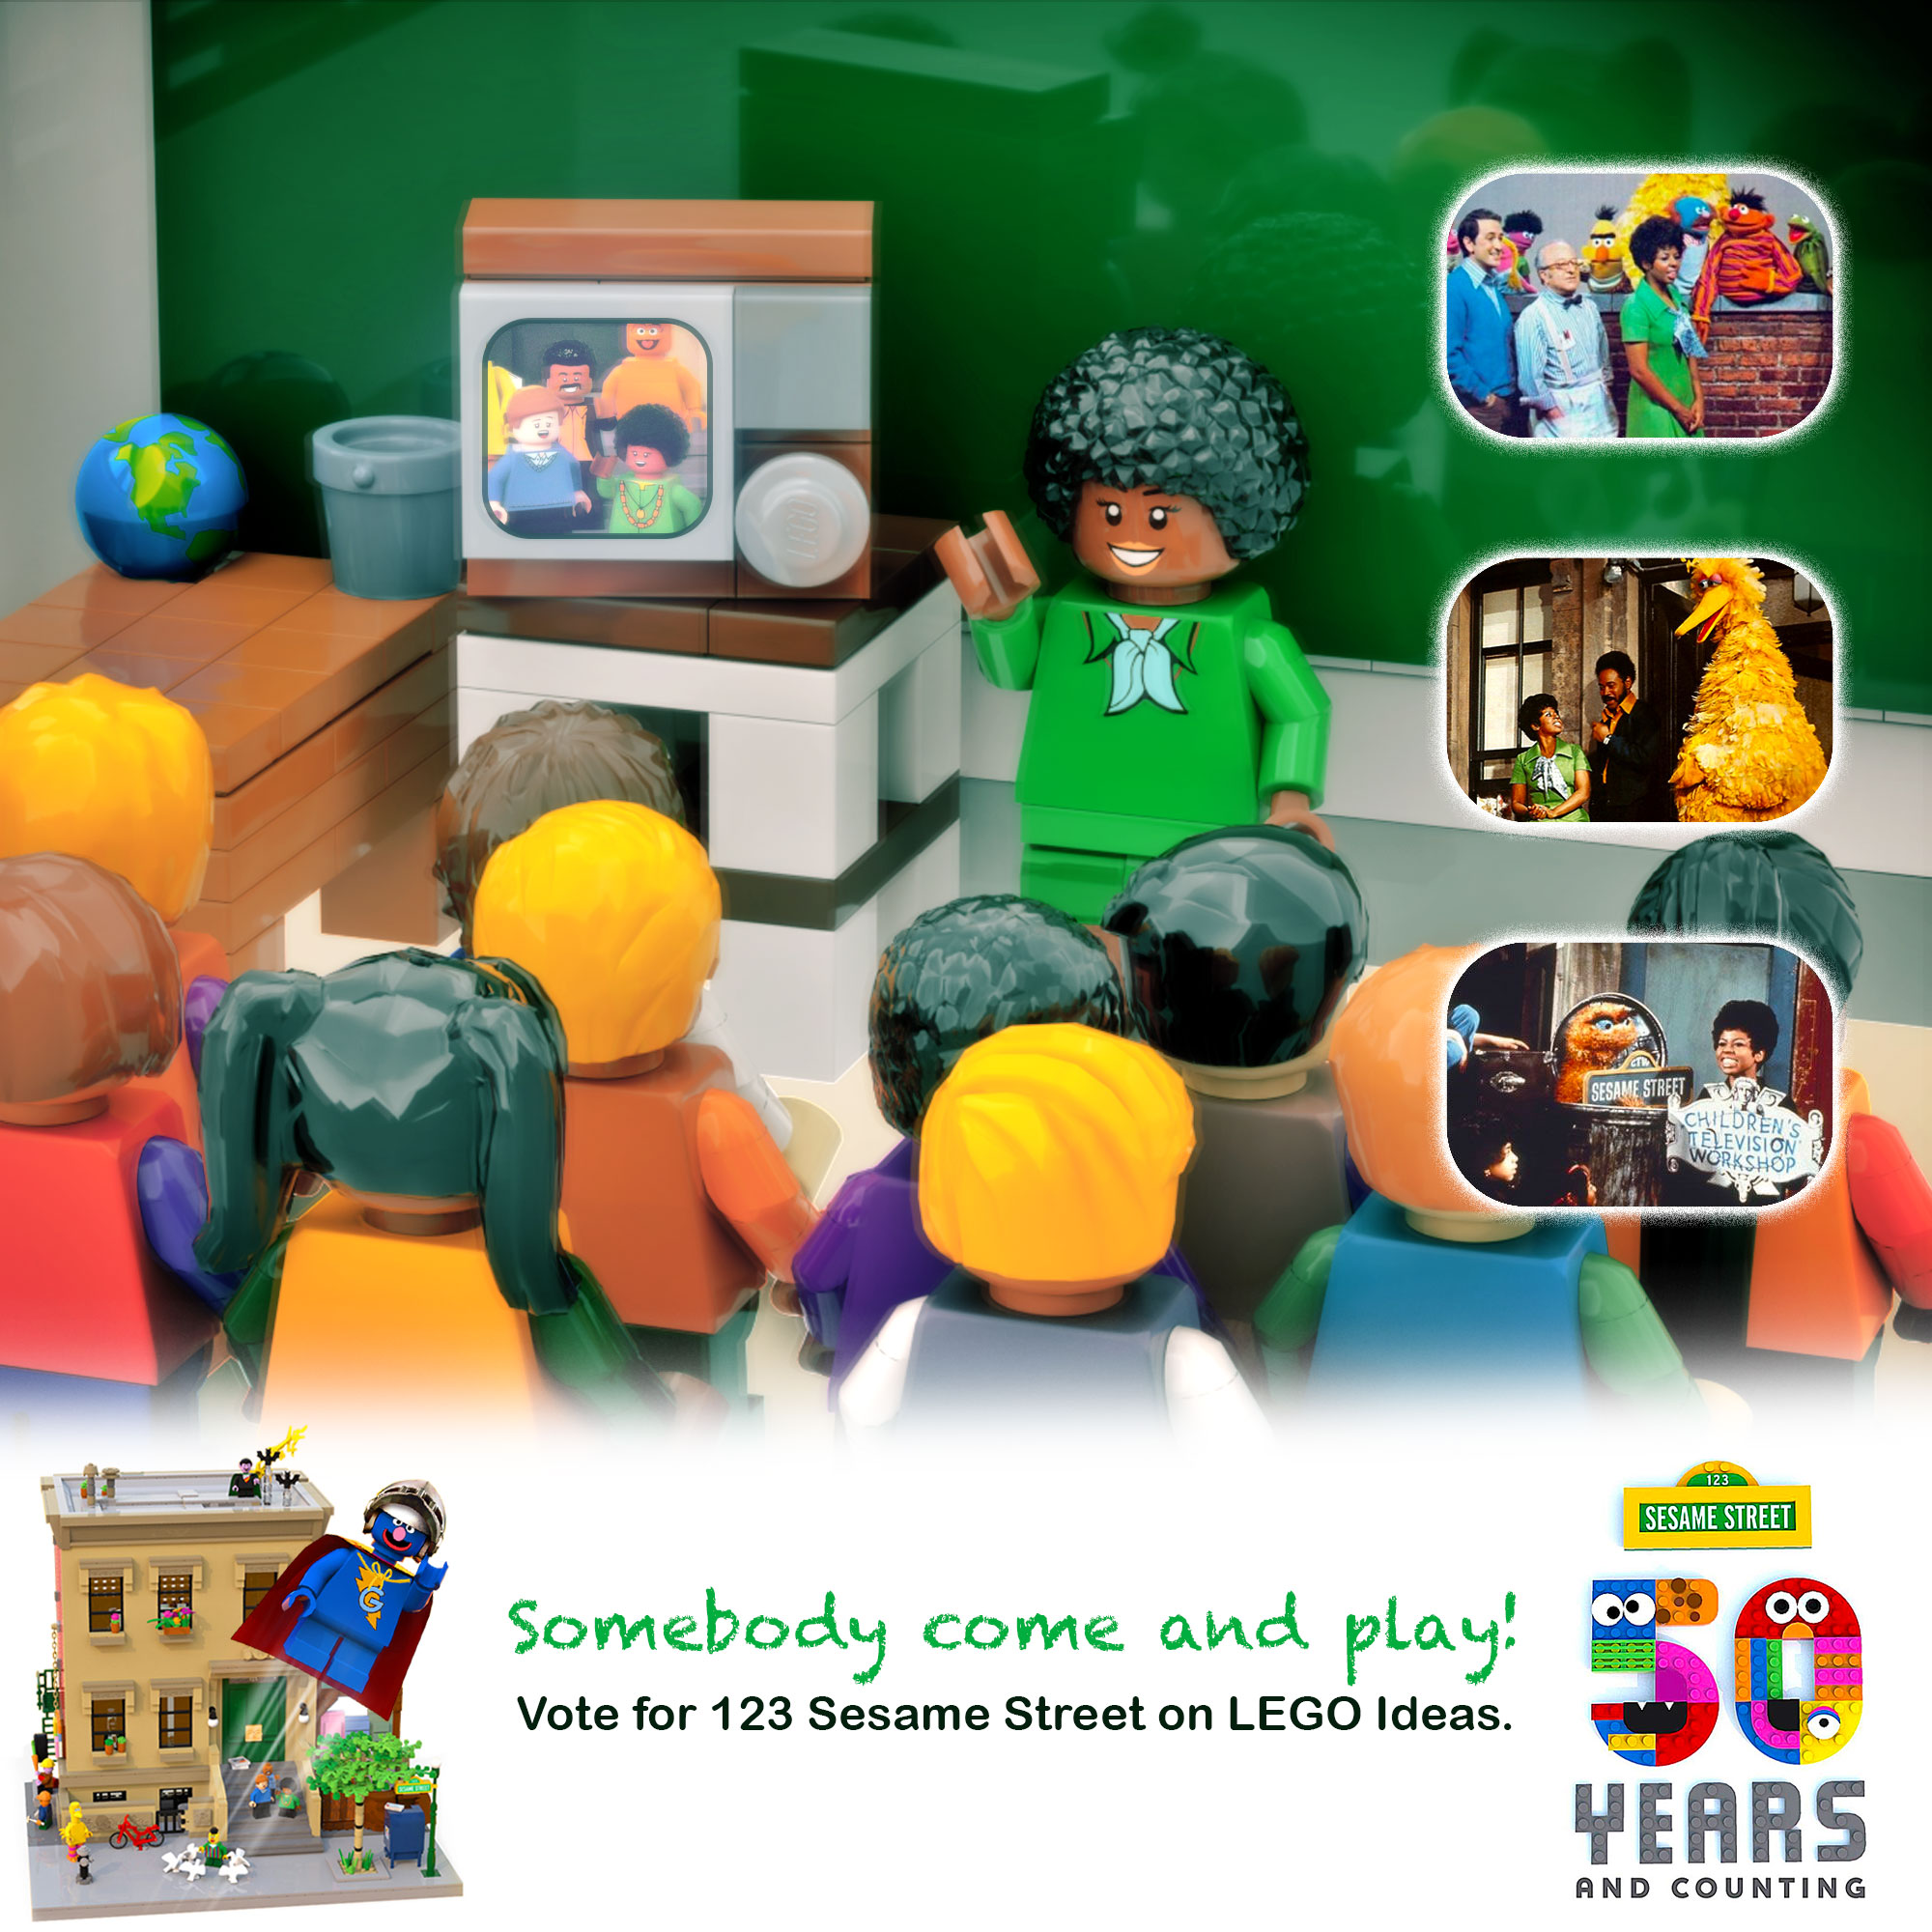 LEGO IDEAS - Product Ideas - 123 Sesame Street